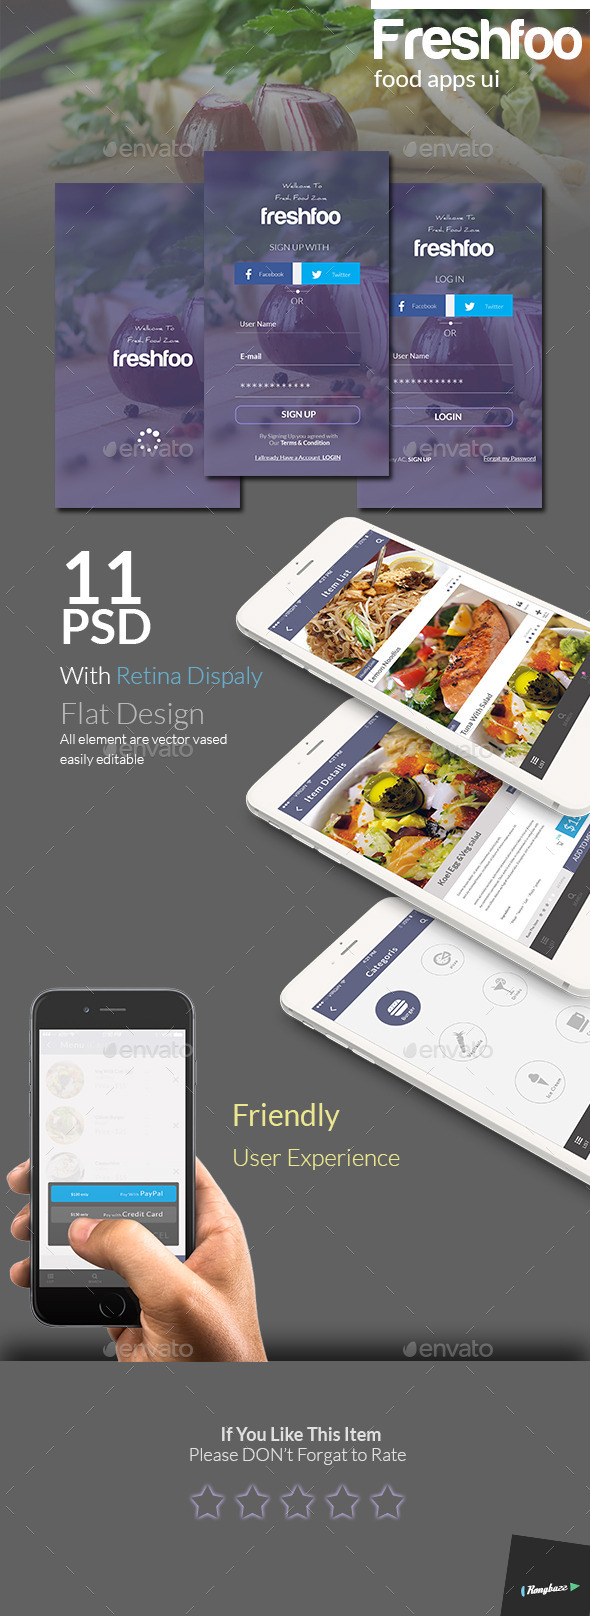 GraphicRiver Food Apps UI 10670401